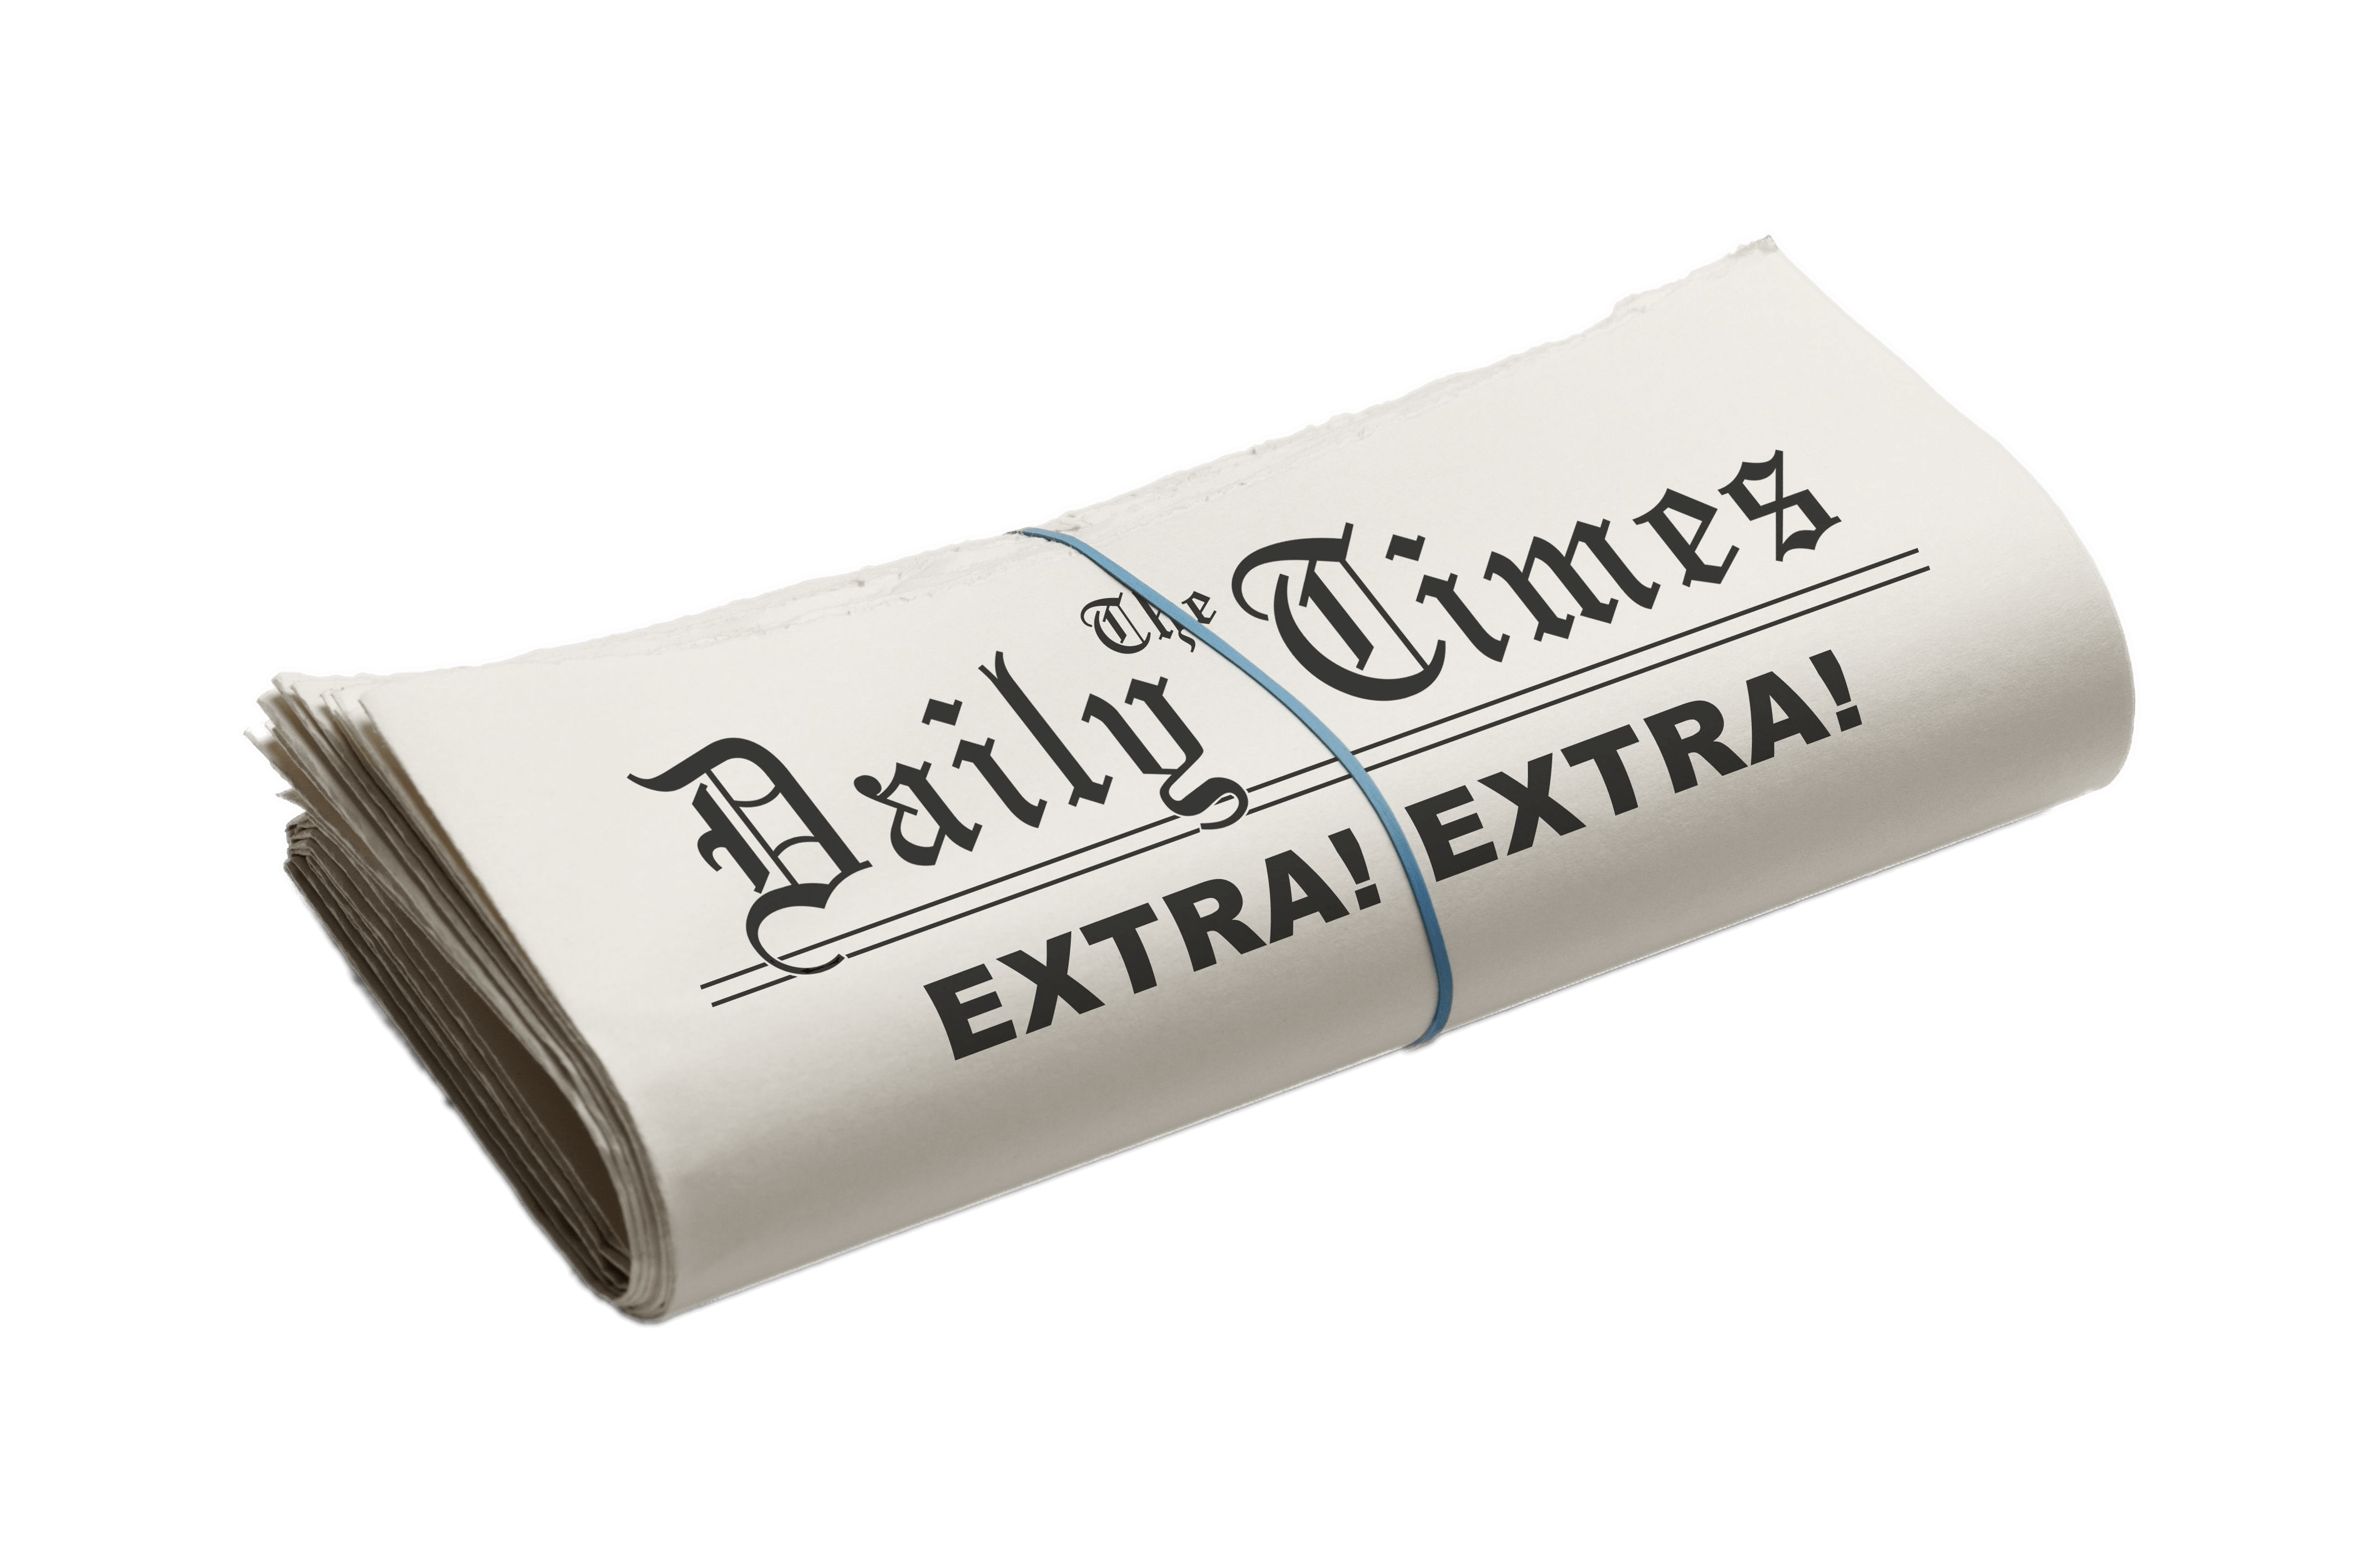 the daily times folded newspaper transparent png - stickpng